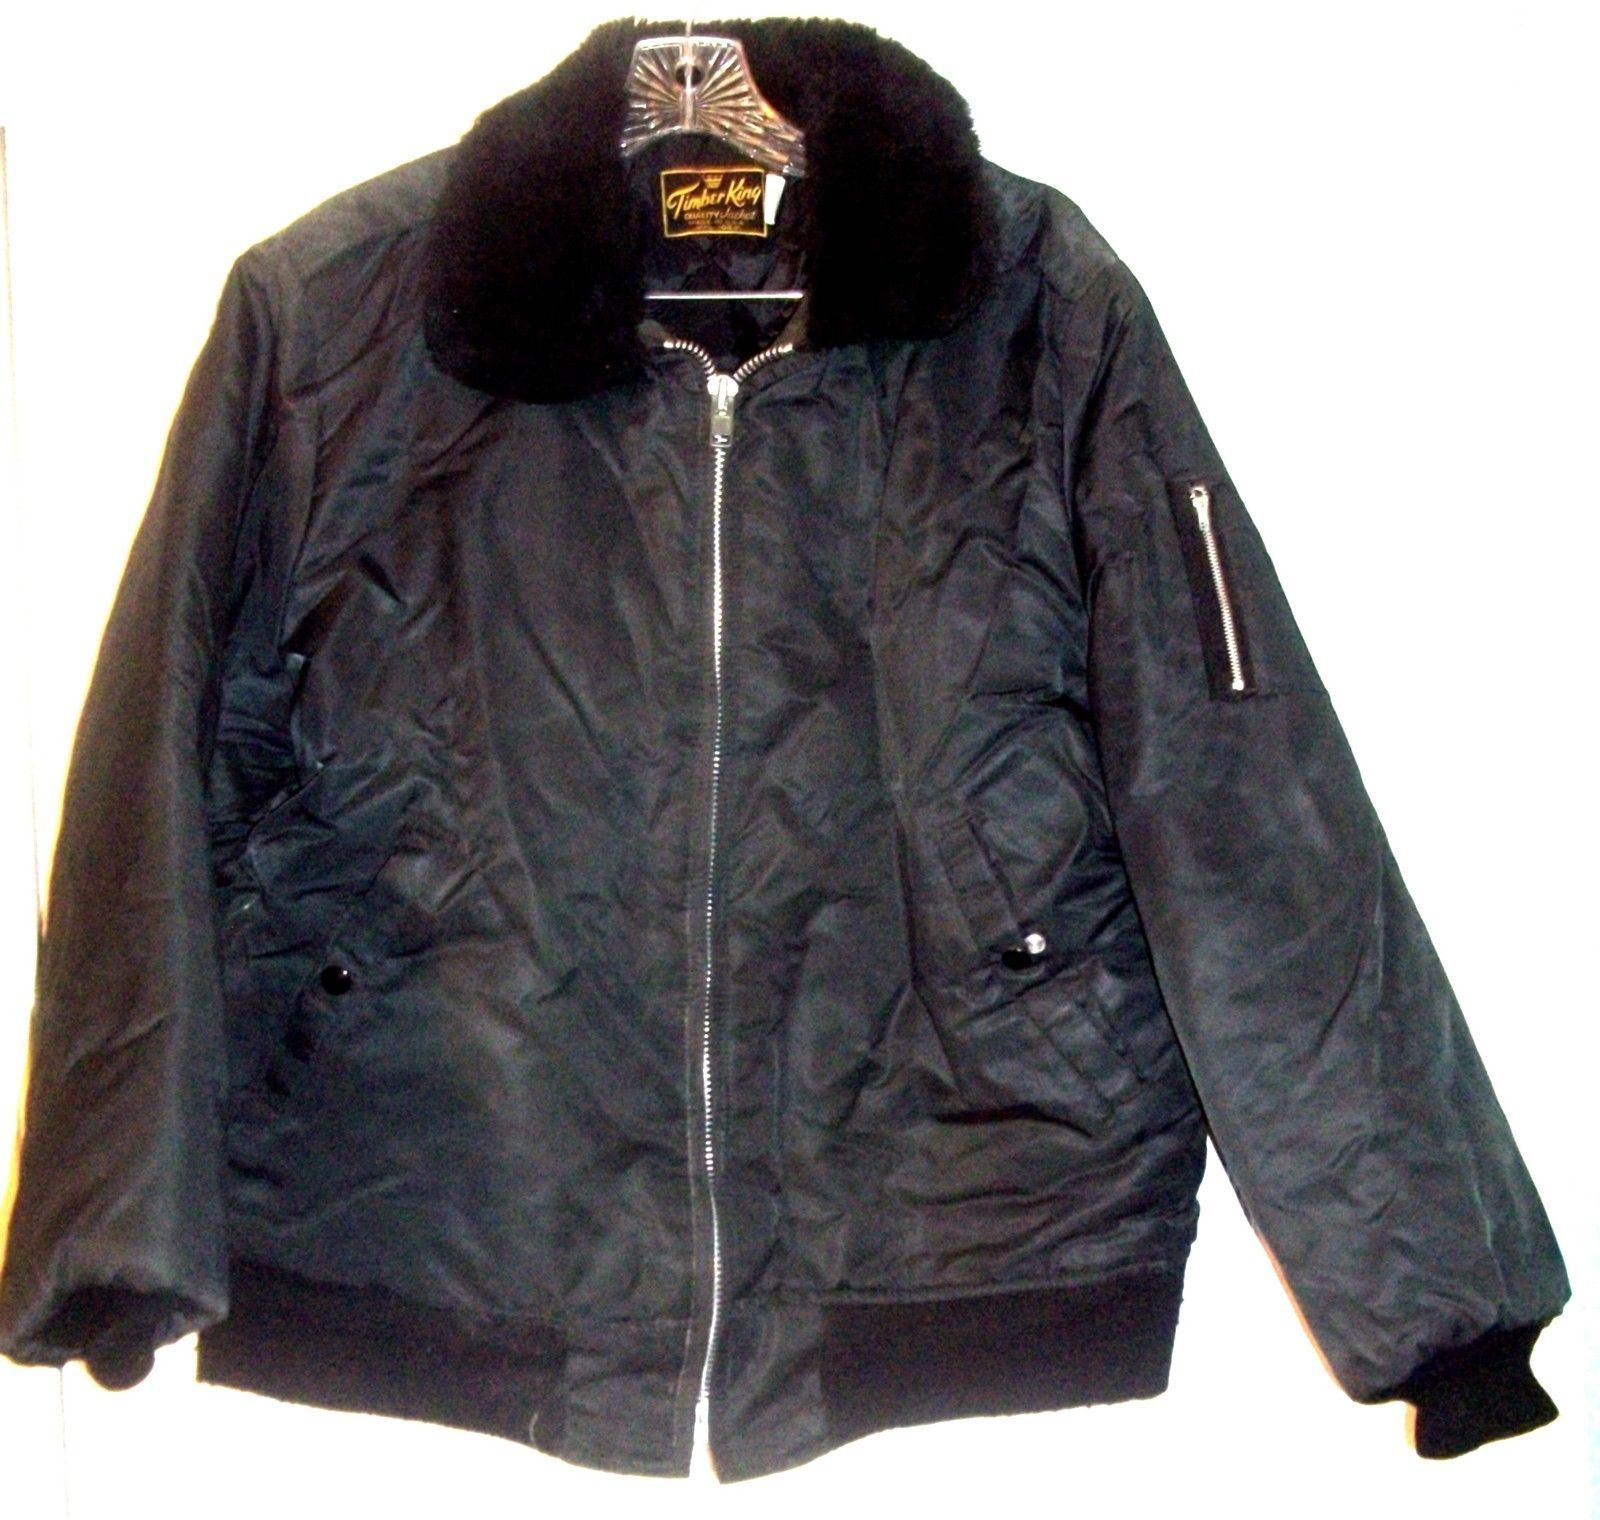 hot new products low price sale uk availability Timber King Black Quilted Jacket w/Fur and 50 similar items